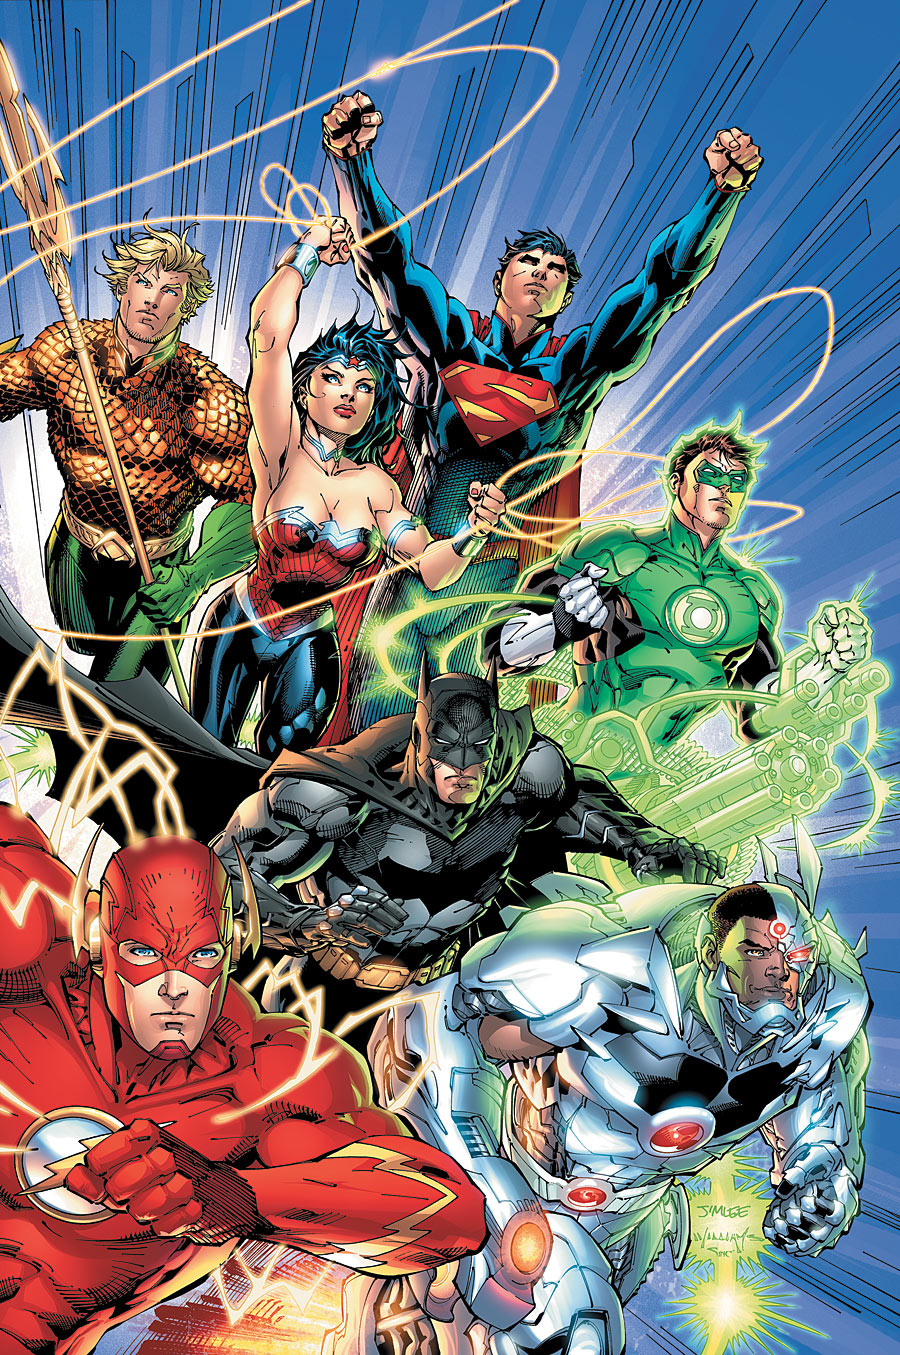 Awesomnistic: Justice League Vol. 1: Origin (The New 52)